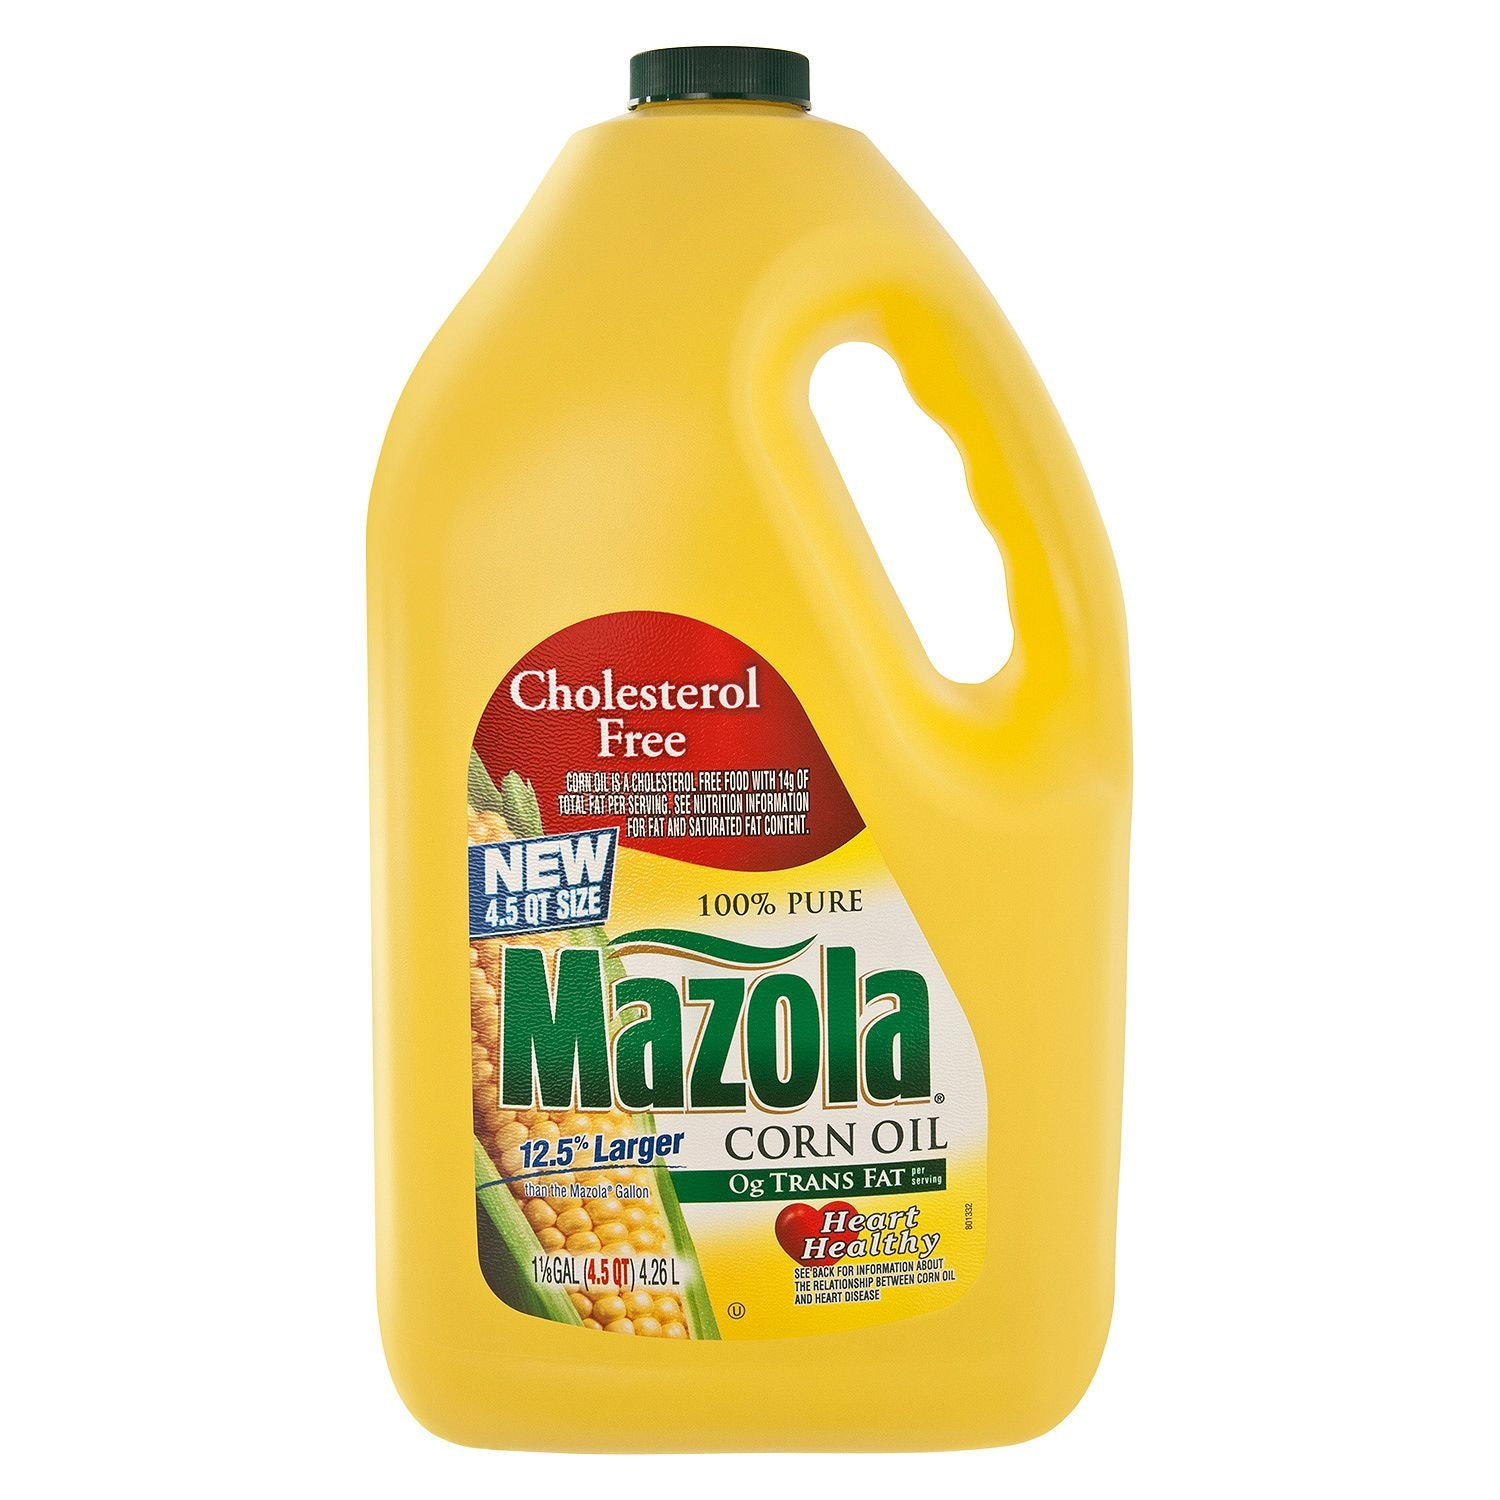 Mazola Corn Oil 4.5 qt. (pack of 4) A1